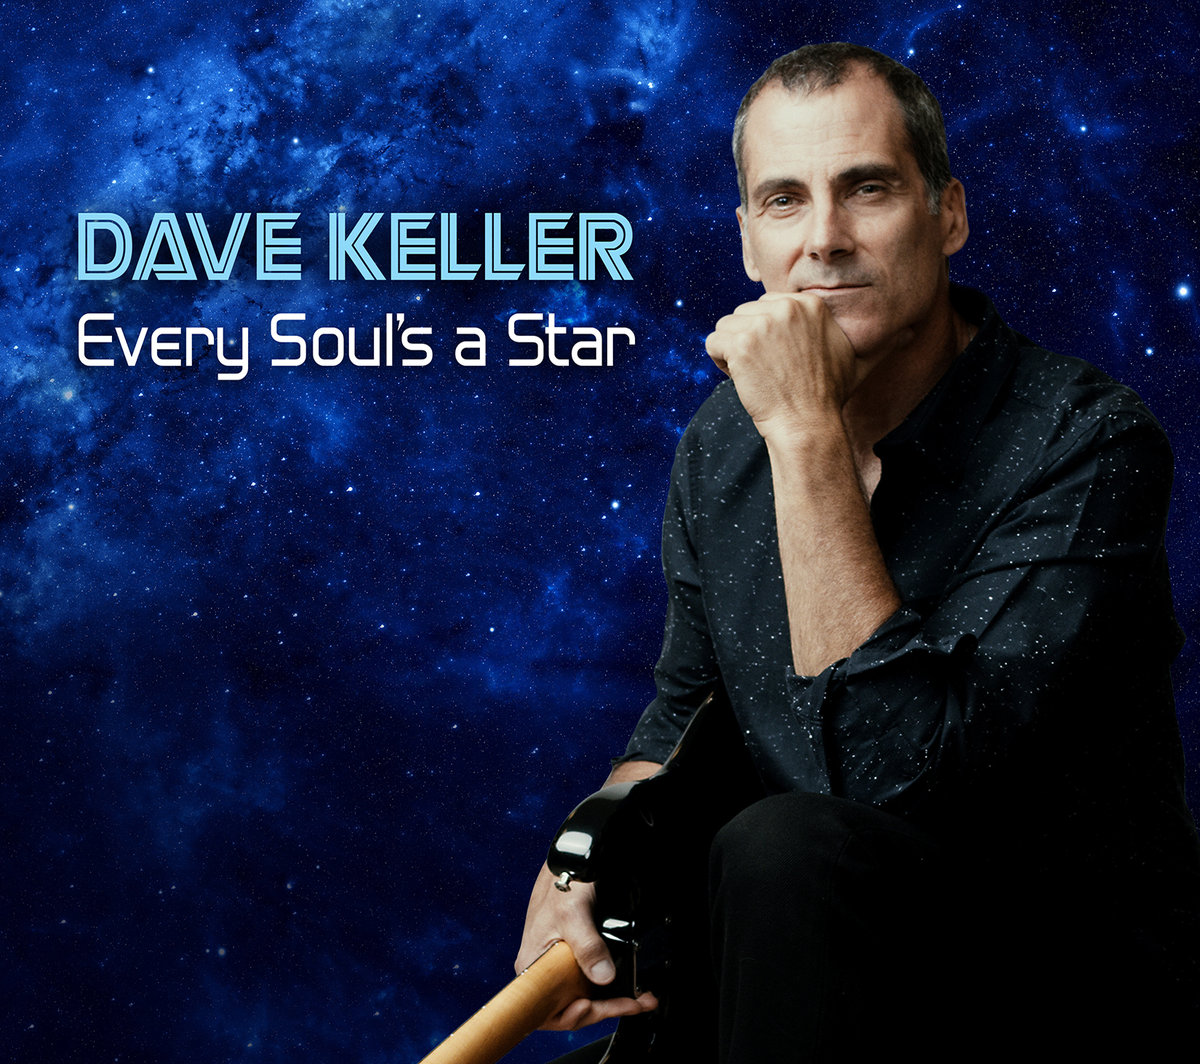 dave-keller-every-soul-s-a-star